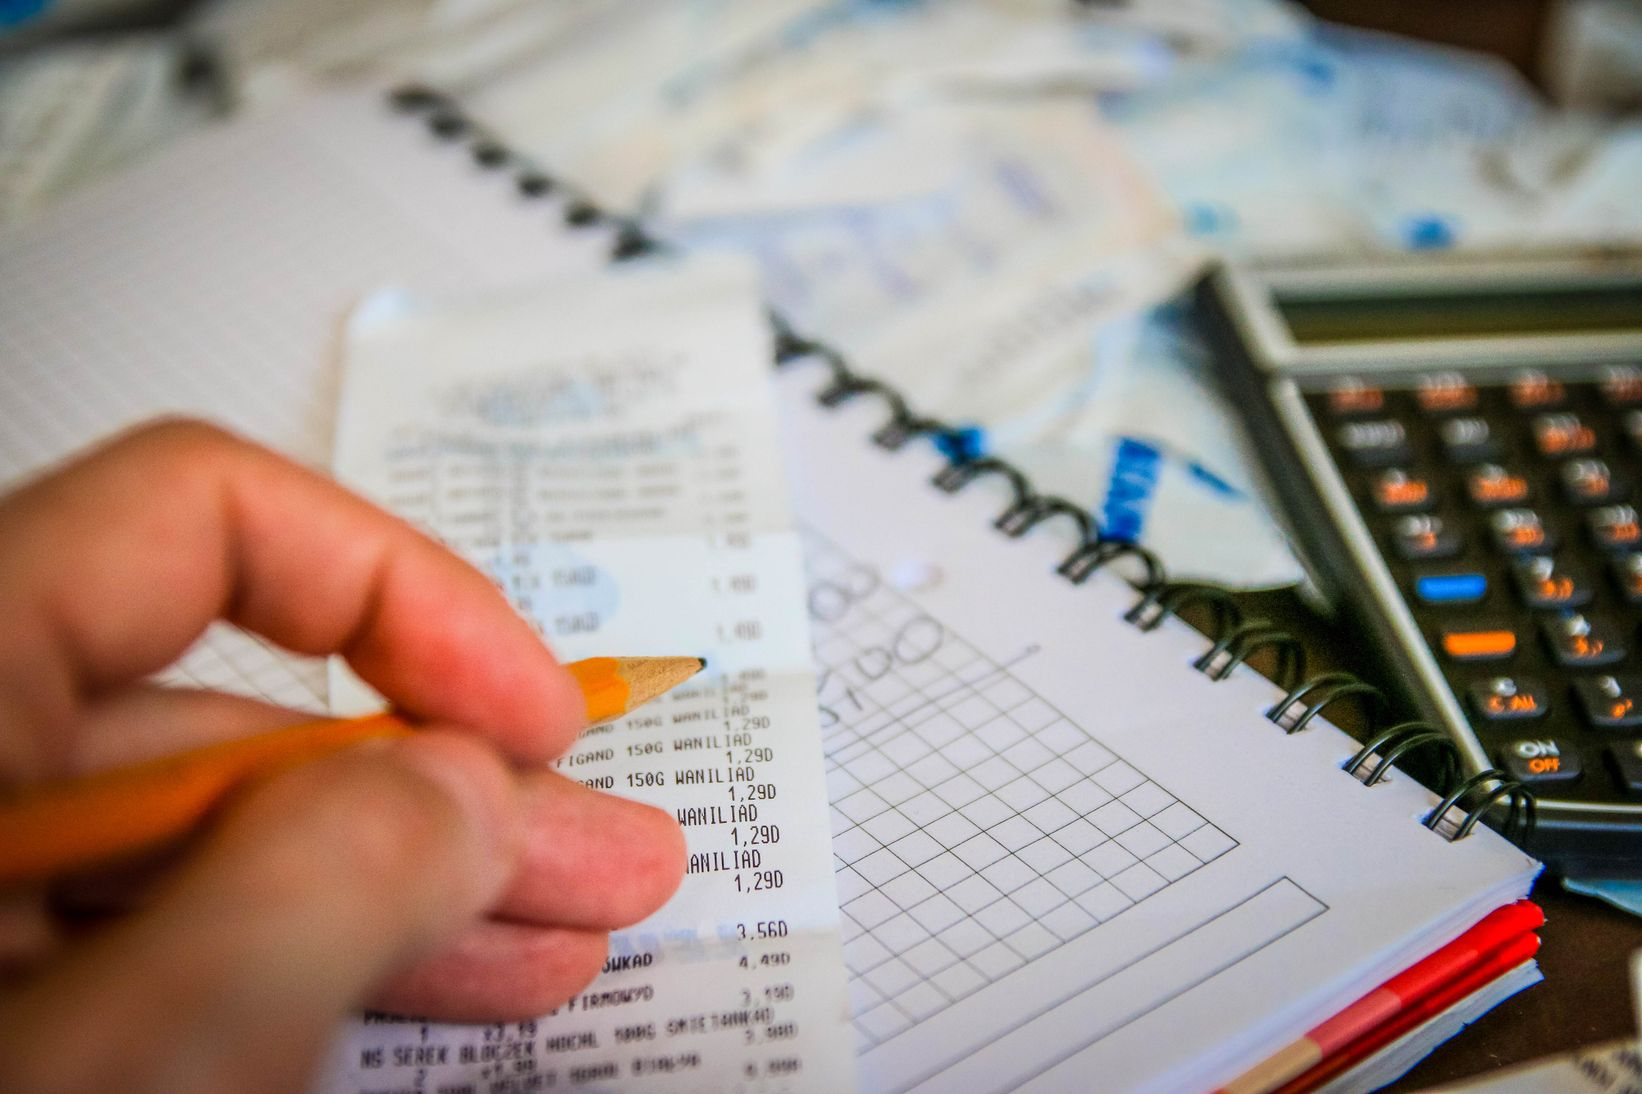 Hand holding a pencil over a receipt surrounded by a notebook, calculator, and other things, indicating that budgeting is one of the most effective ways to stop overspending